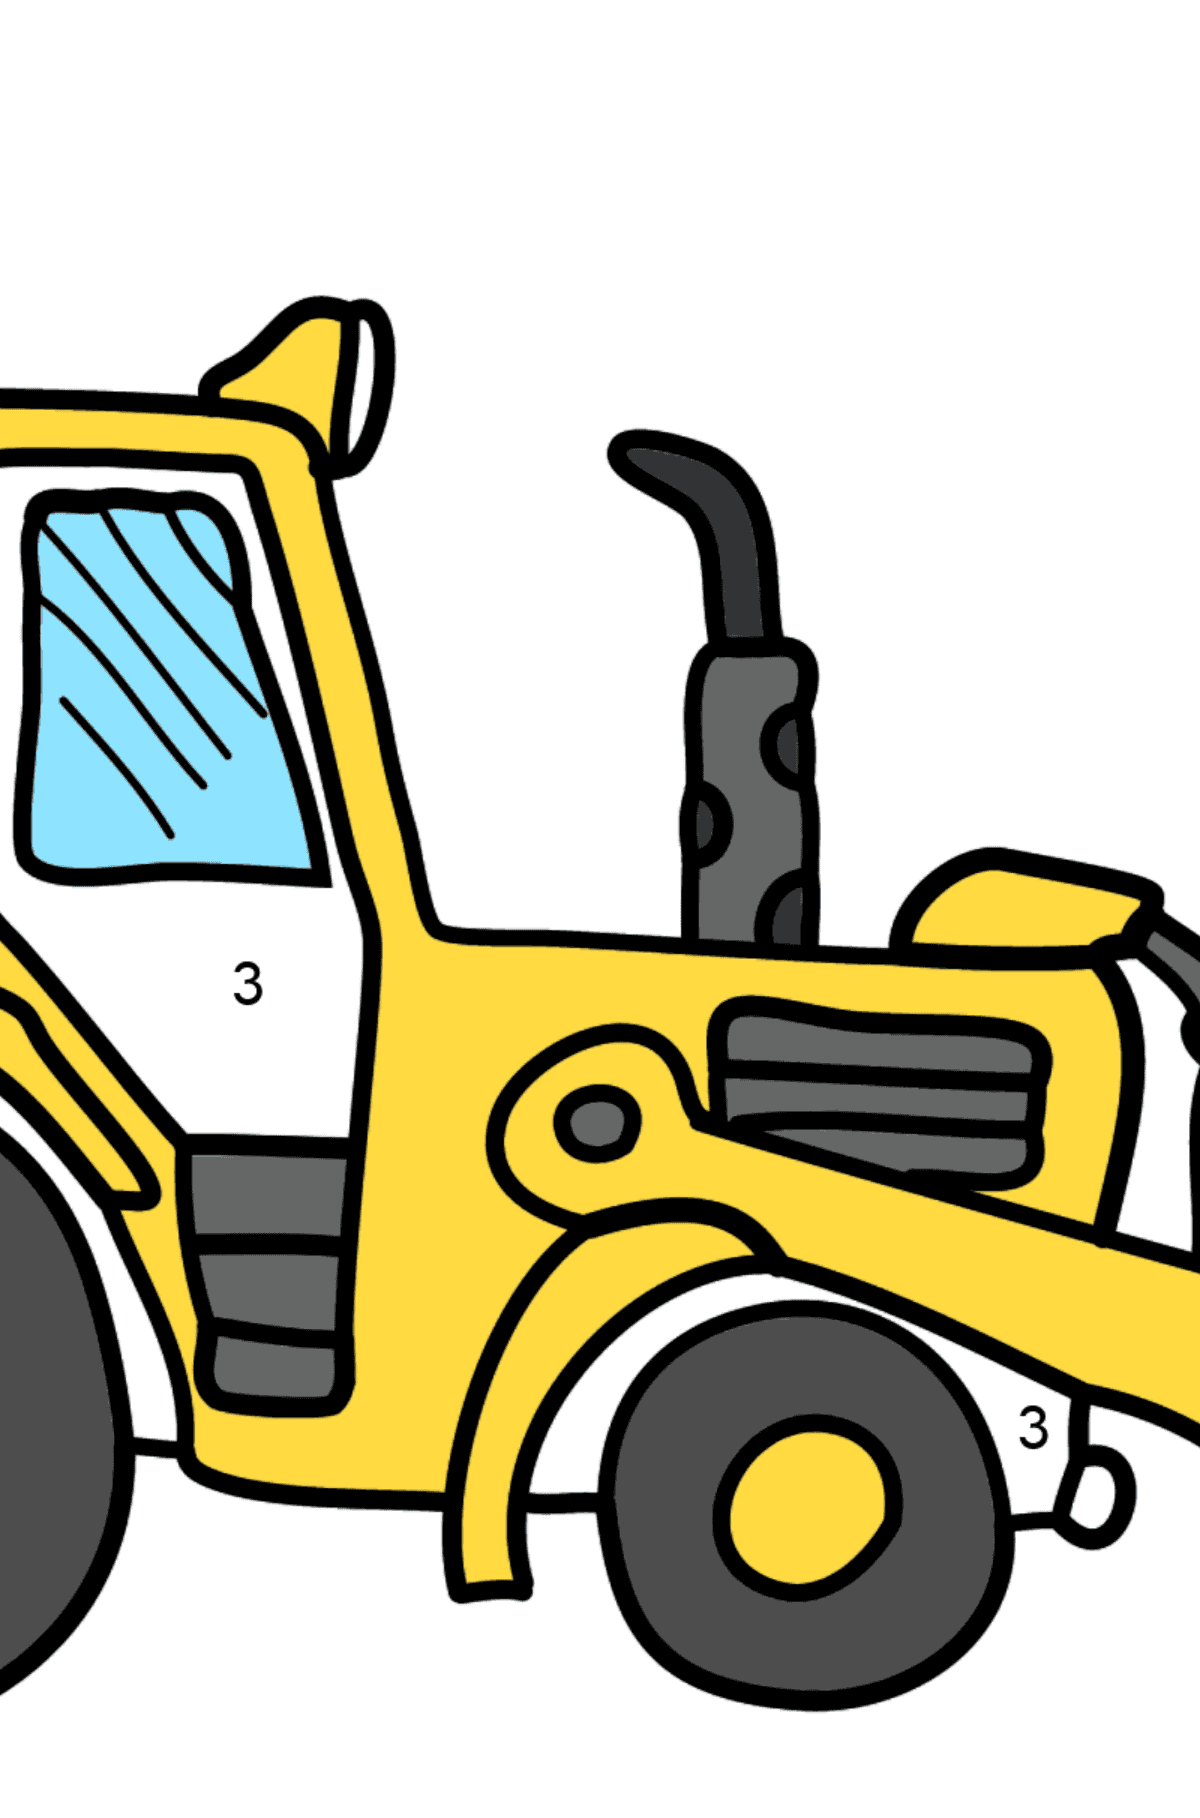 Coloring Page - A Yellow Tractor - Coloring by Numbers for Kids